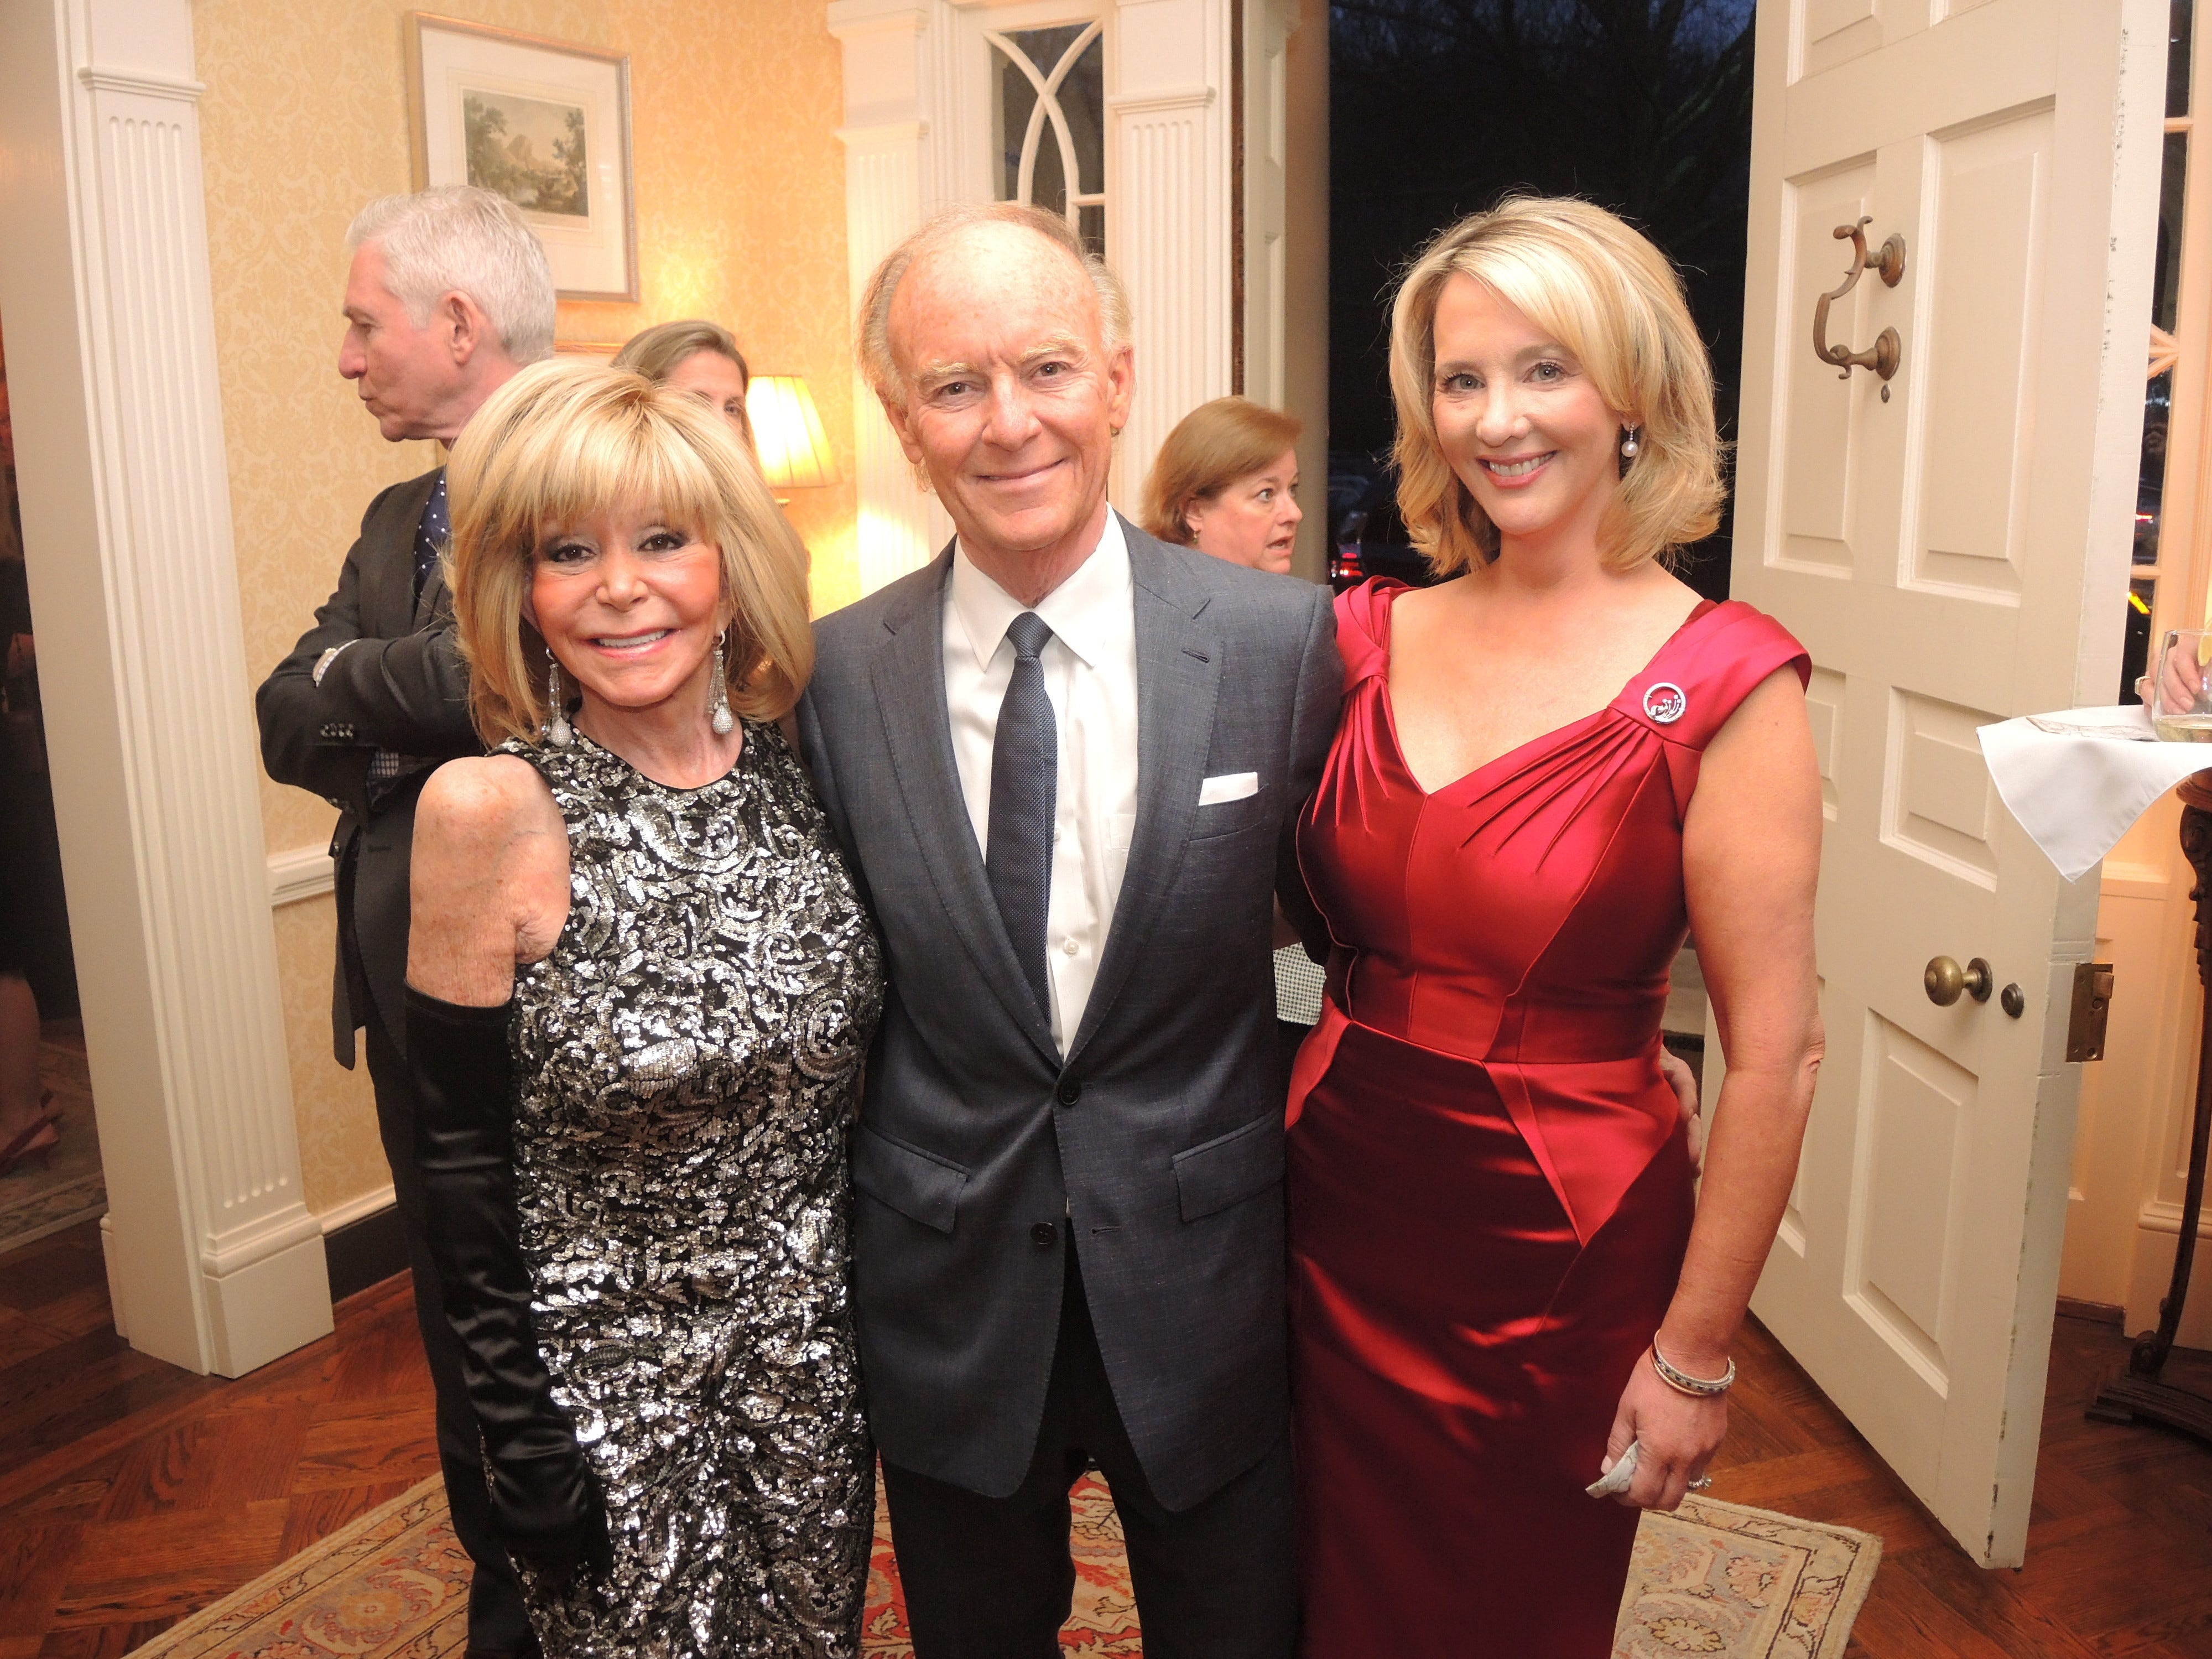 Joyce Vise, left, and Mark and Emily Humphreys at the Swan Ball 2019 Unveiling, held at the home of Kathy and Bobby Rolfe.